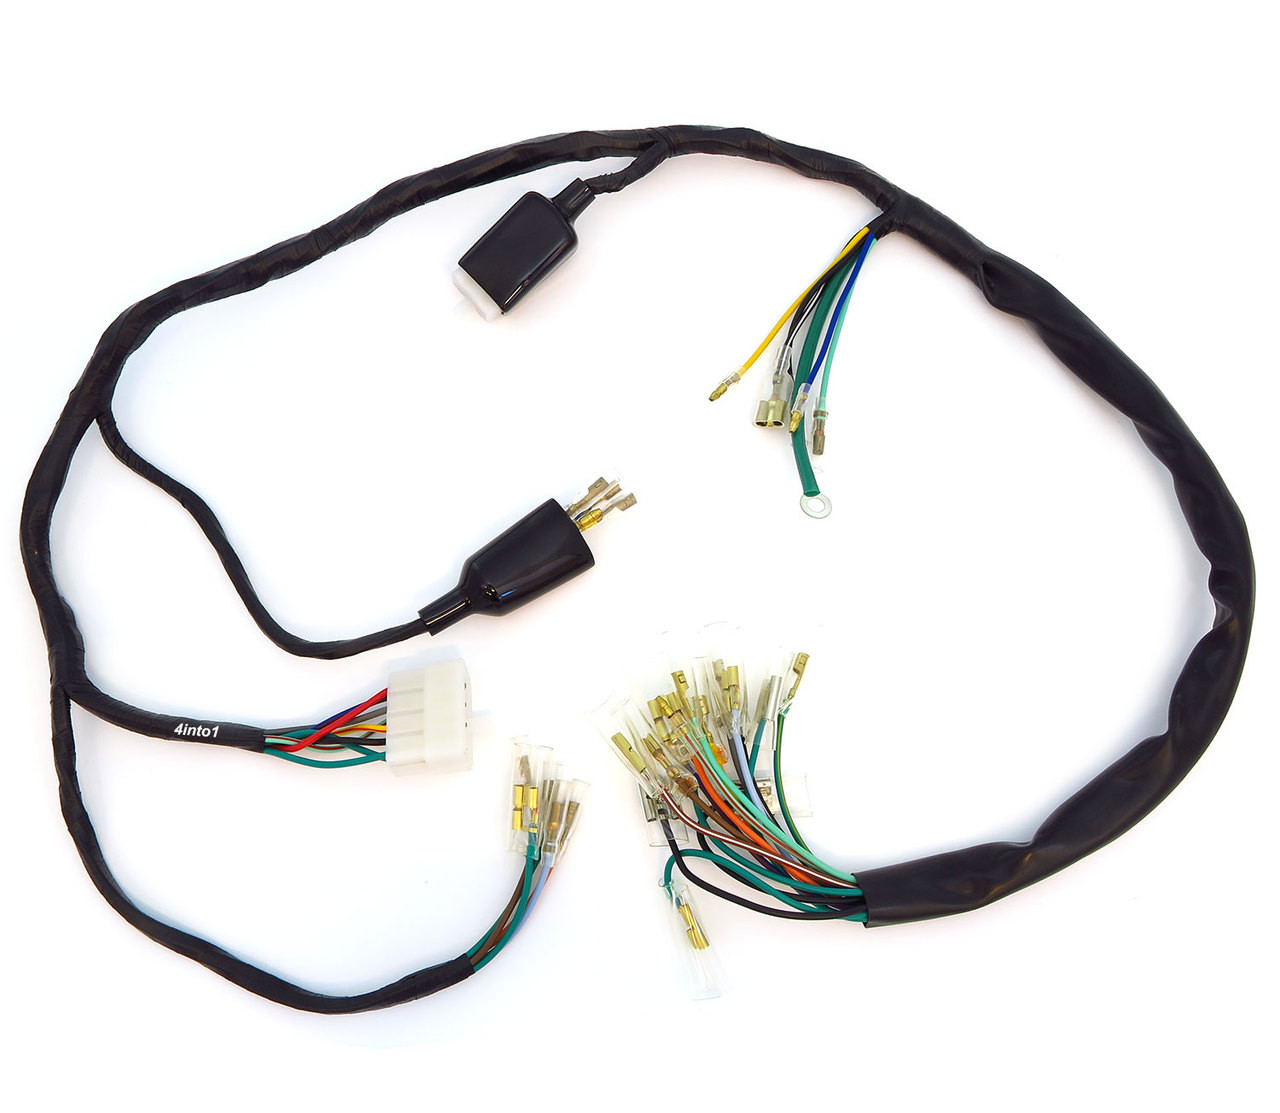 fatboy wiring harness wiring library main wiring harness 32100 323 040 honda cb500k 1972 1973 fatboy wiring harness honda wiring harness